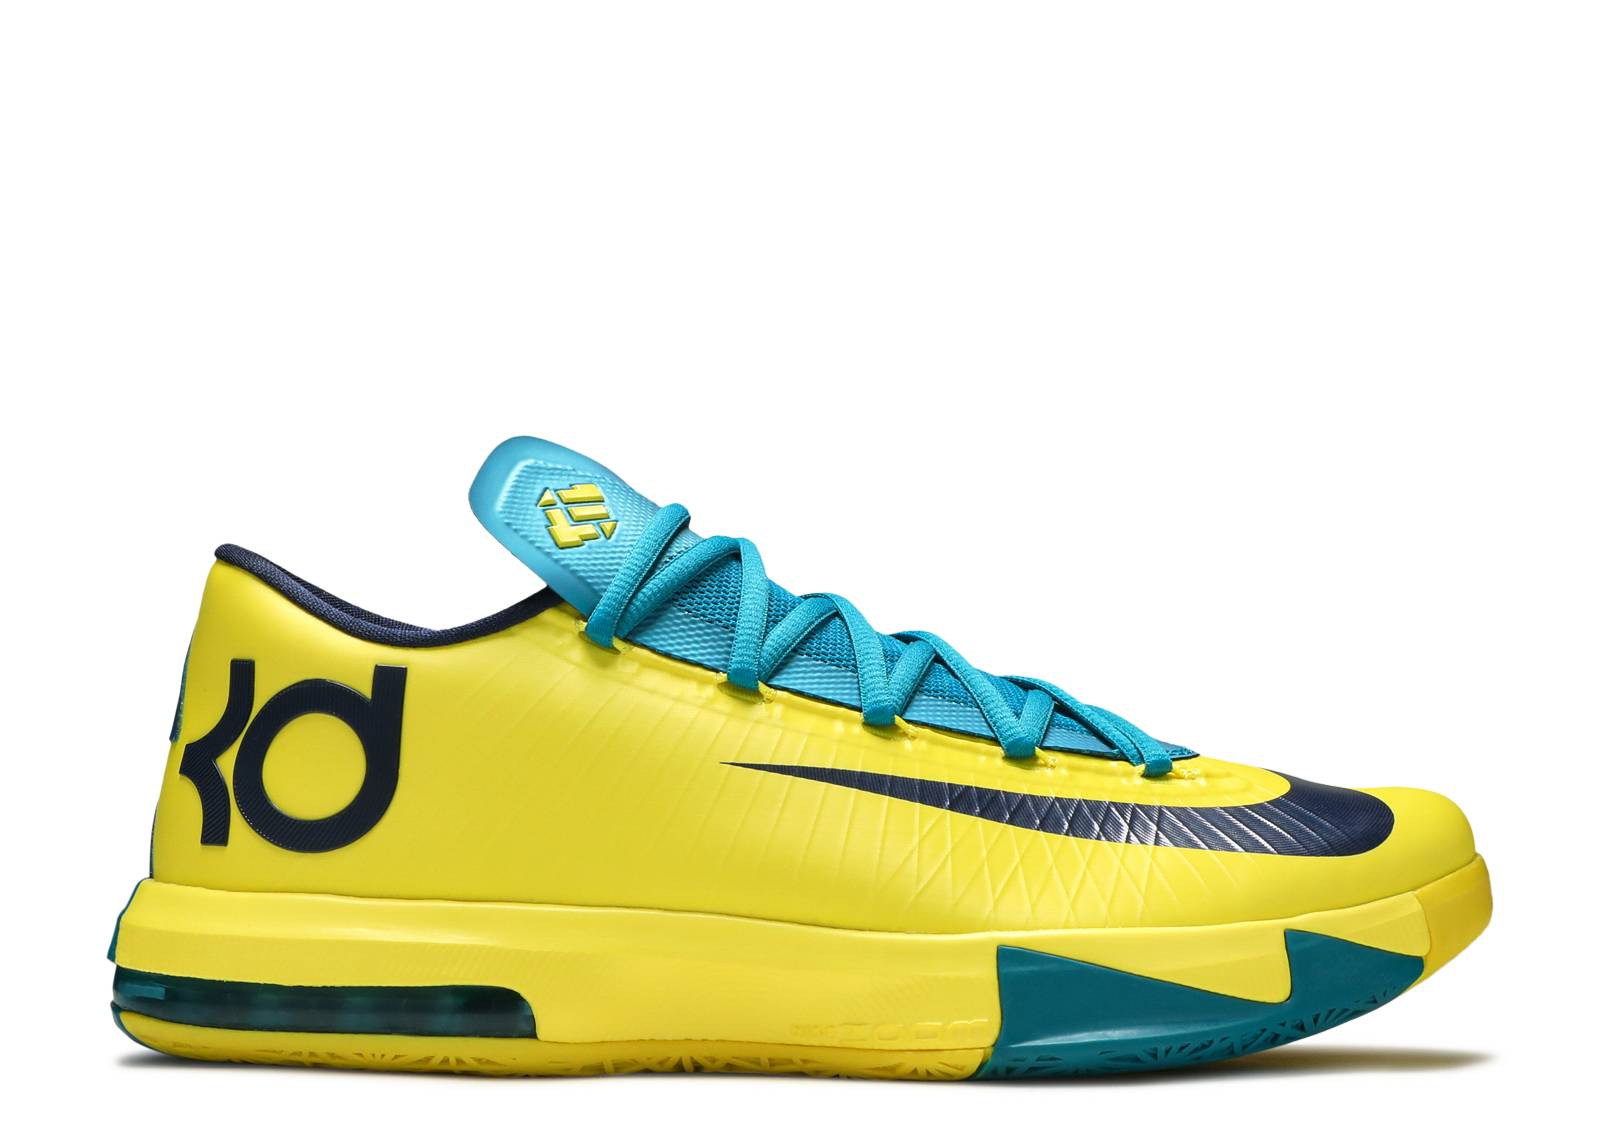 7285c0d2f3 ... yellow teal online for sale 3; nike. kd 6 seat pleasant